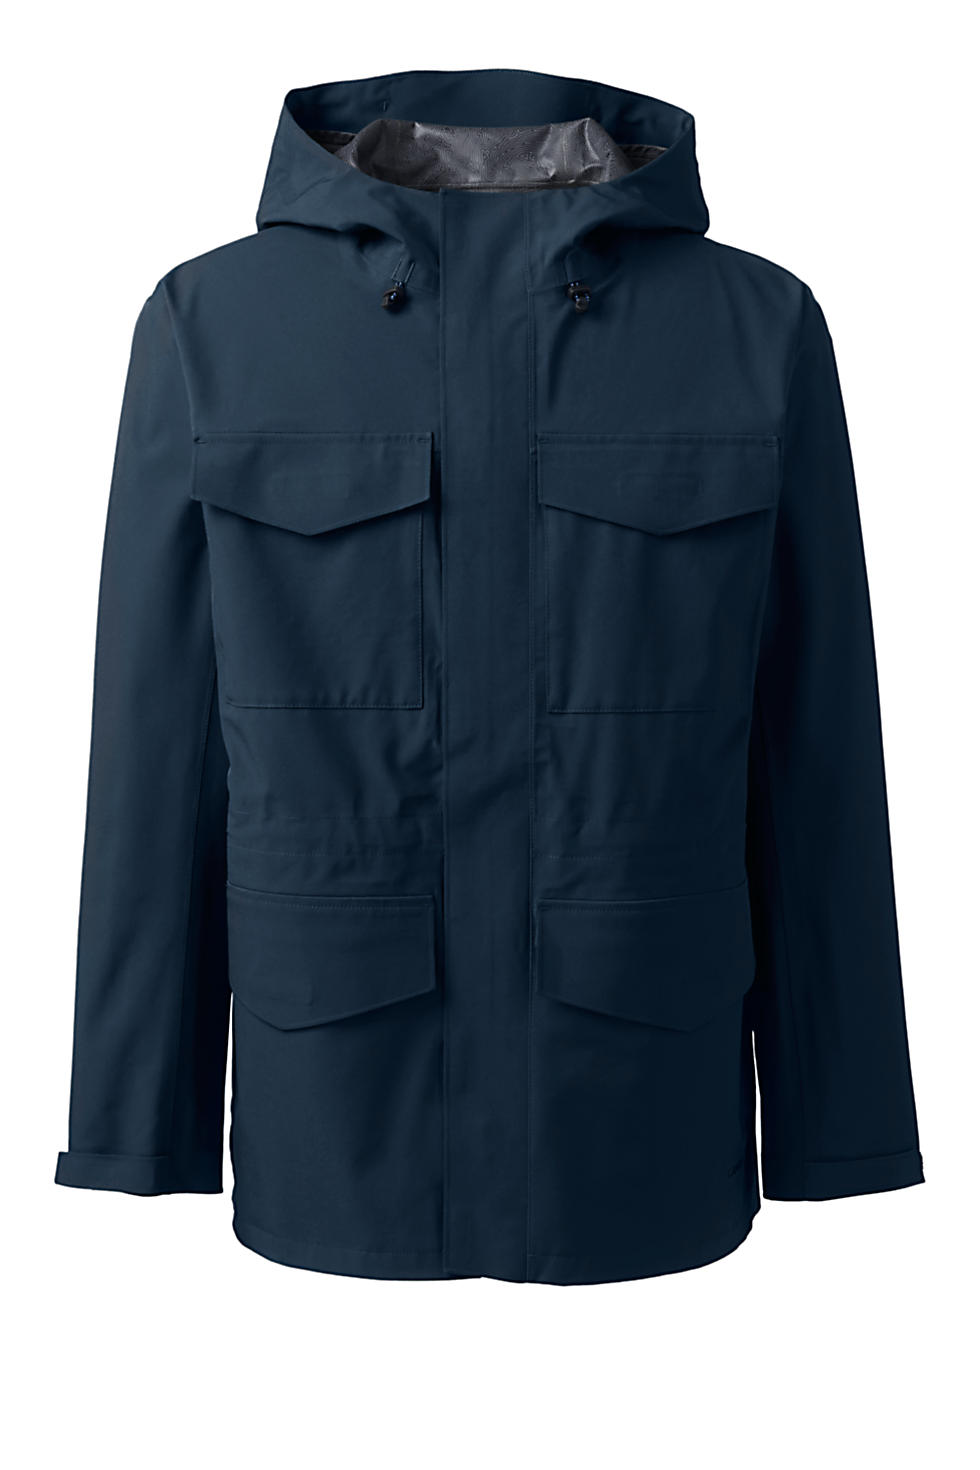 Lands End Mens Waterproof Rain Parka (Radiant Navy)